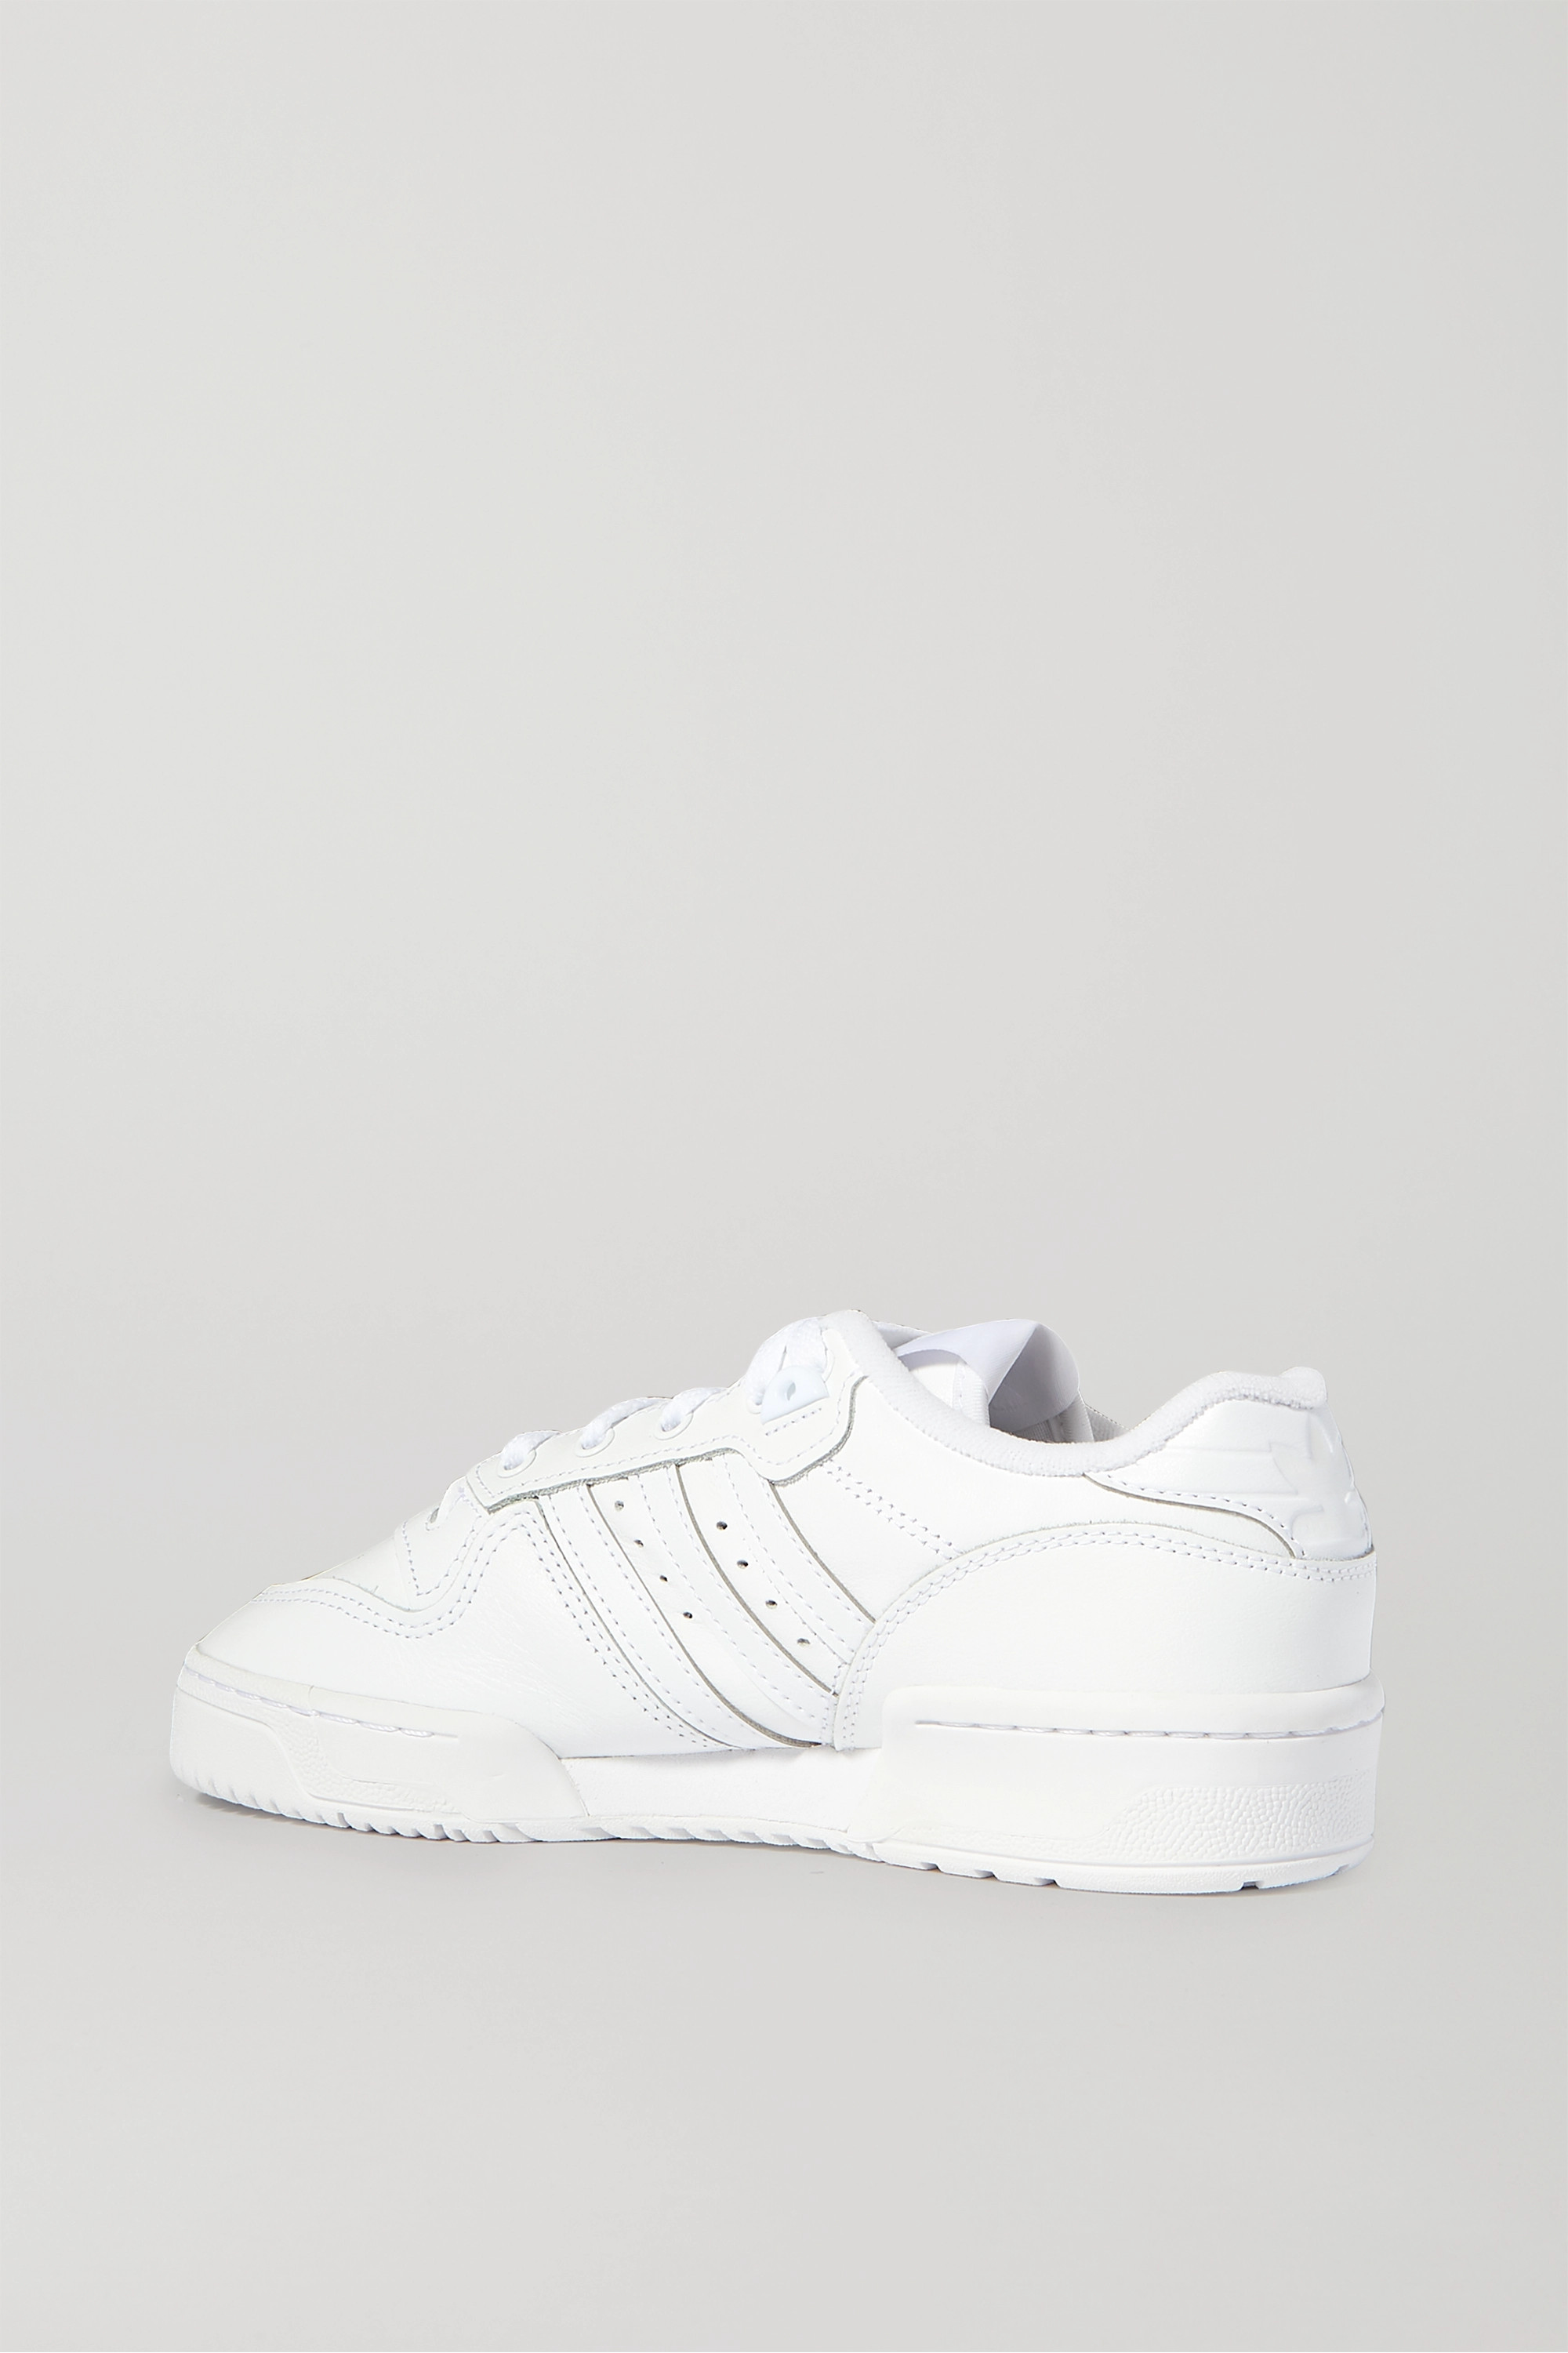 ADIDAS ORIGINALS Rivalry Low leather sneakers